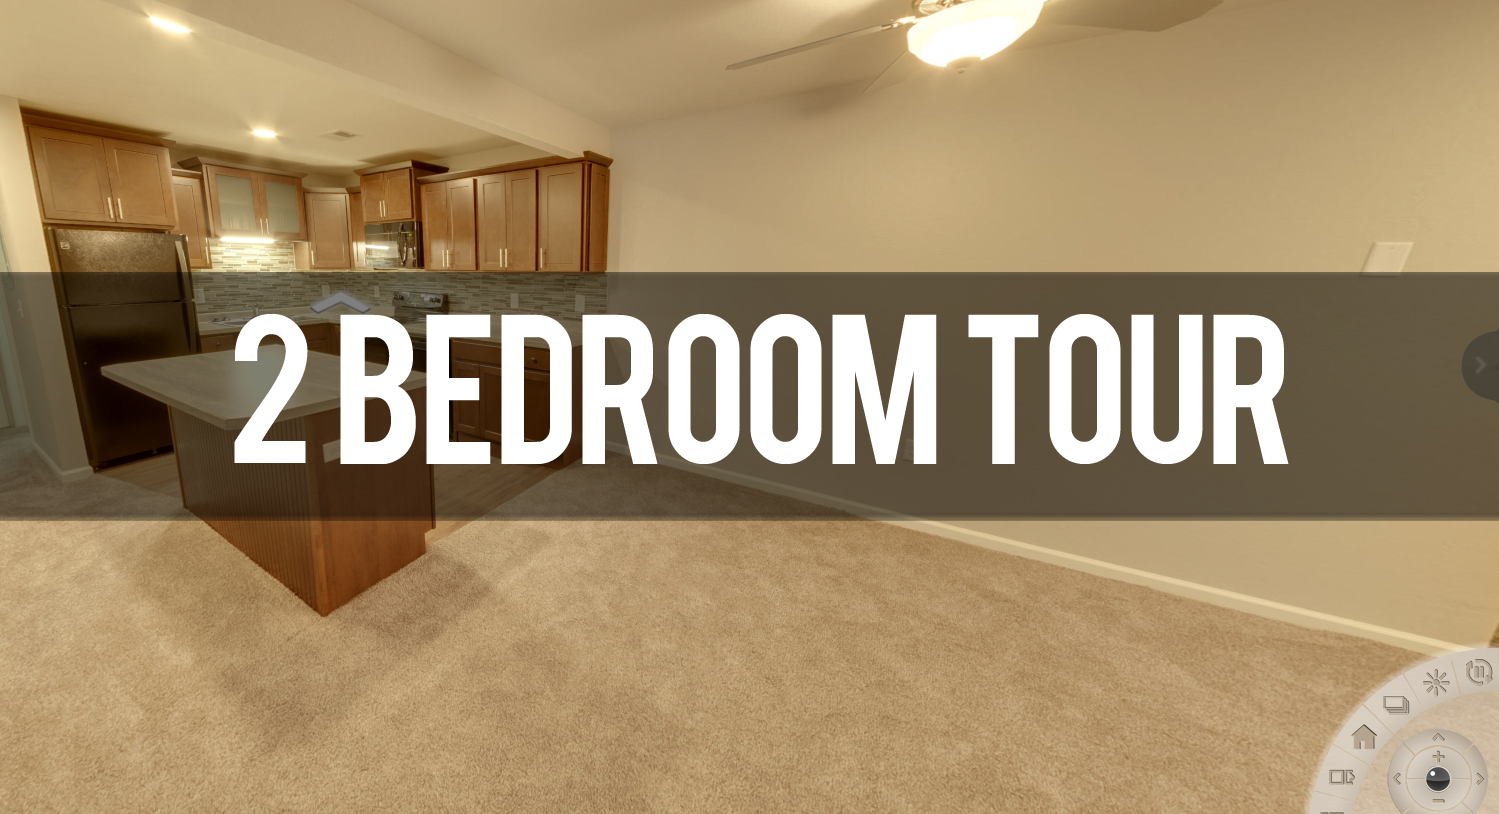 Virtual Tour of 2 Bedroom Apartment at Alpine Slopes